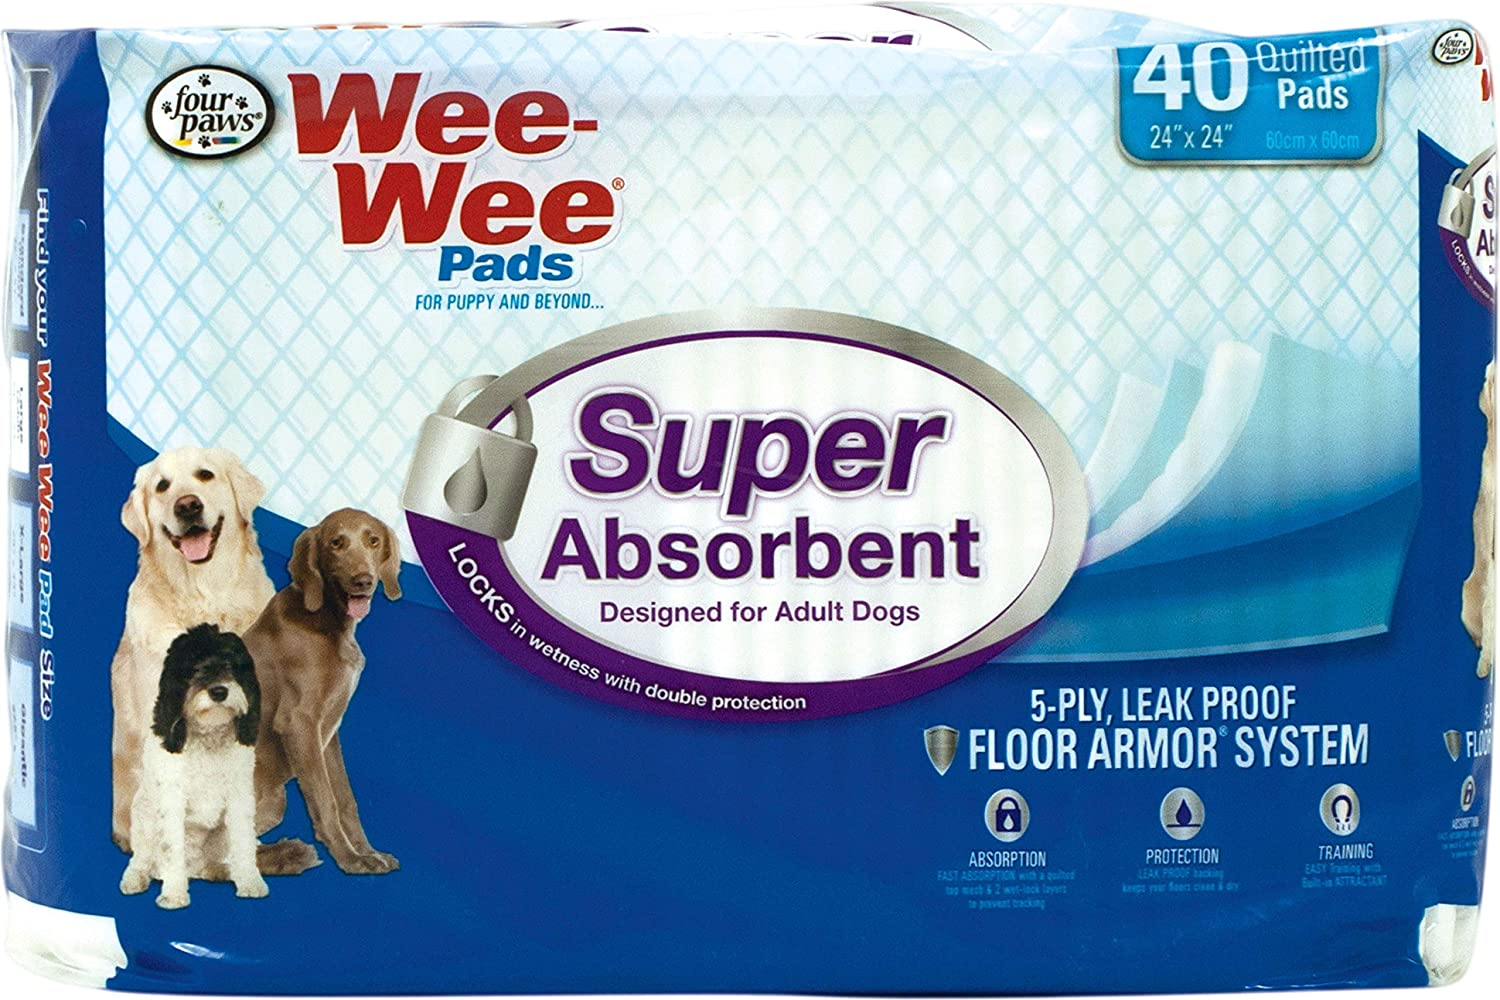 Four Paws Super Absorbent Wee-Wee Dog Pads 40 ct